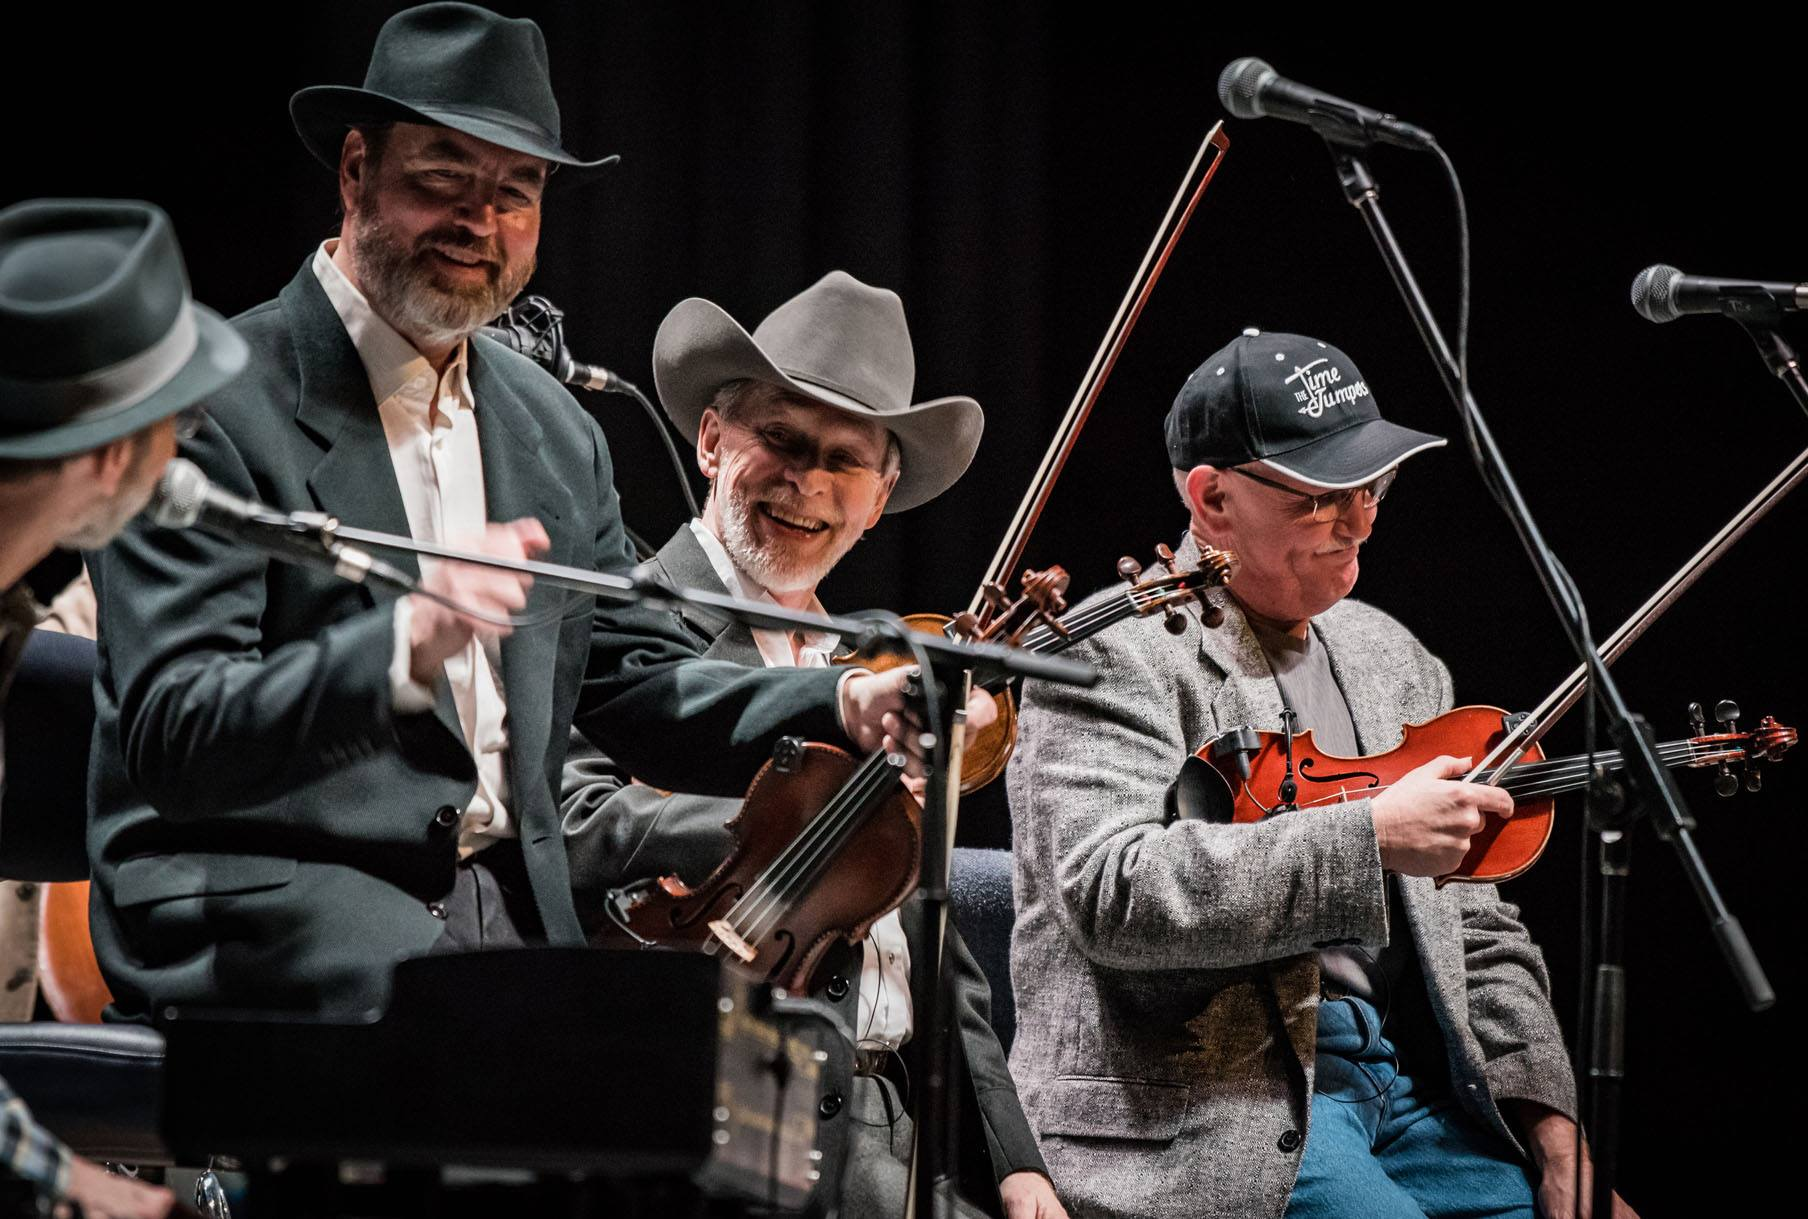 The Time Jumpers Fiddlers at the National Fiddler Hall of Fame